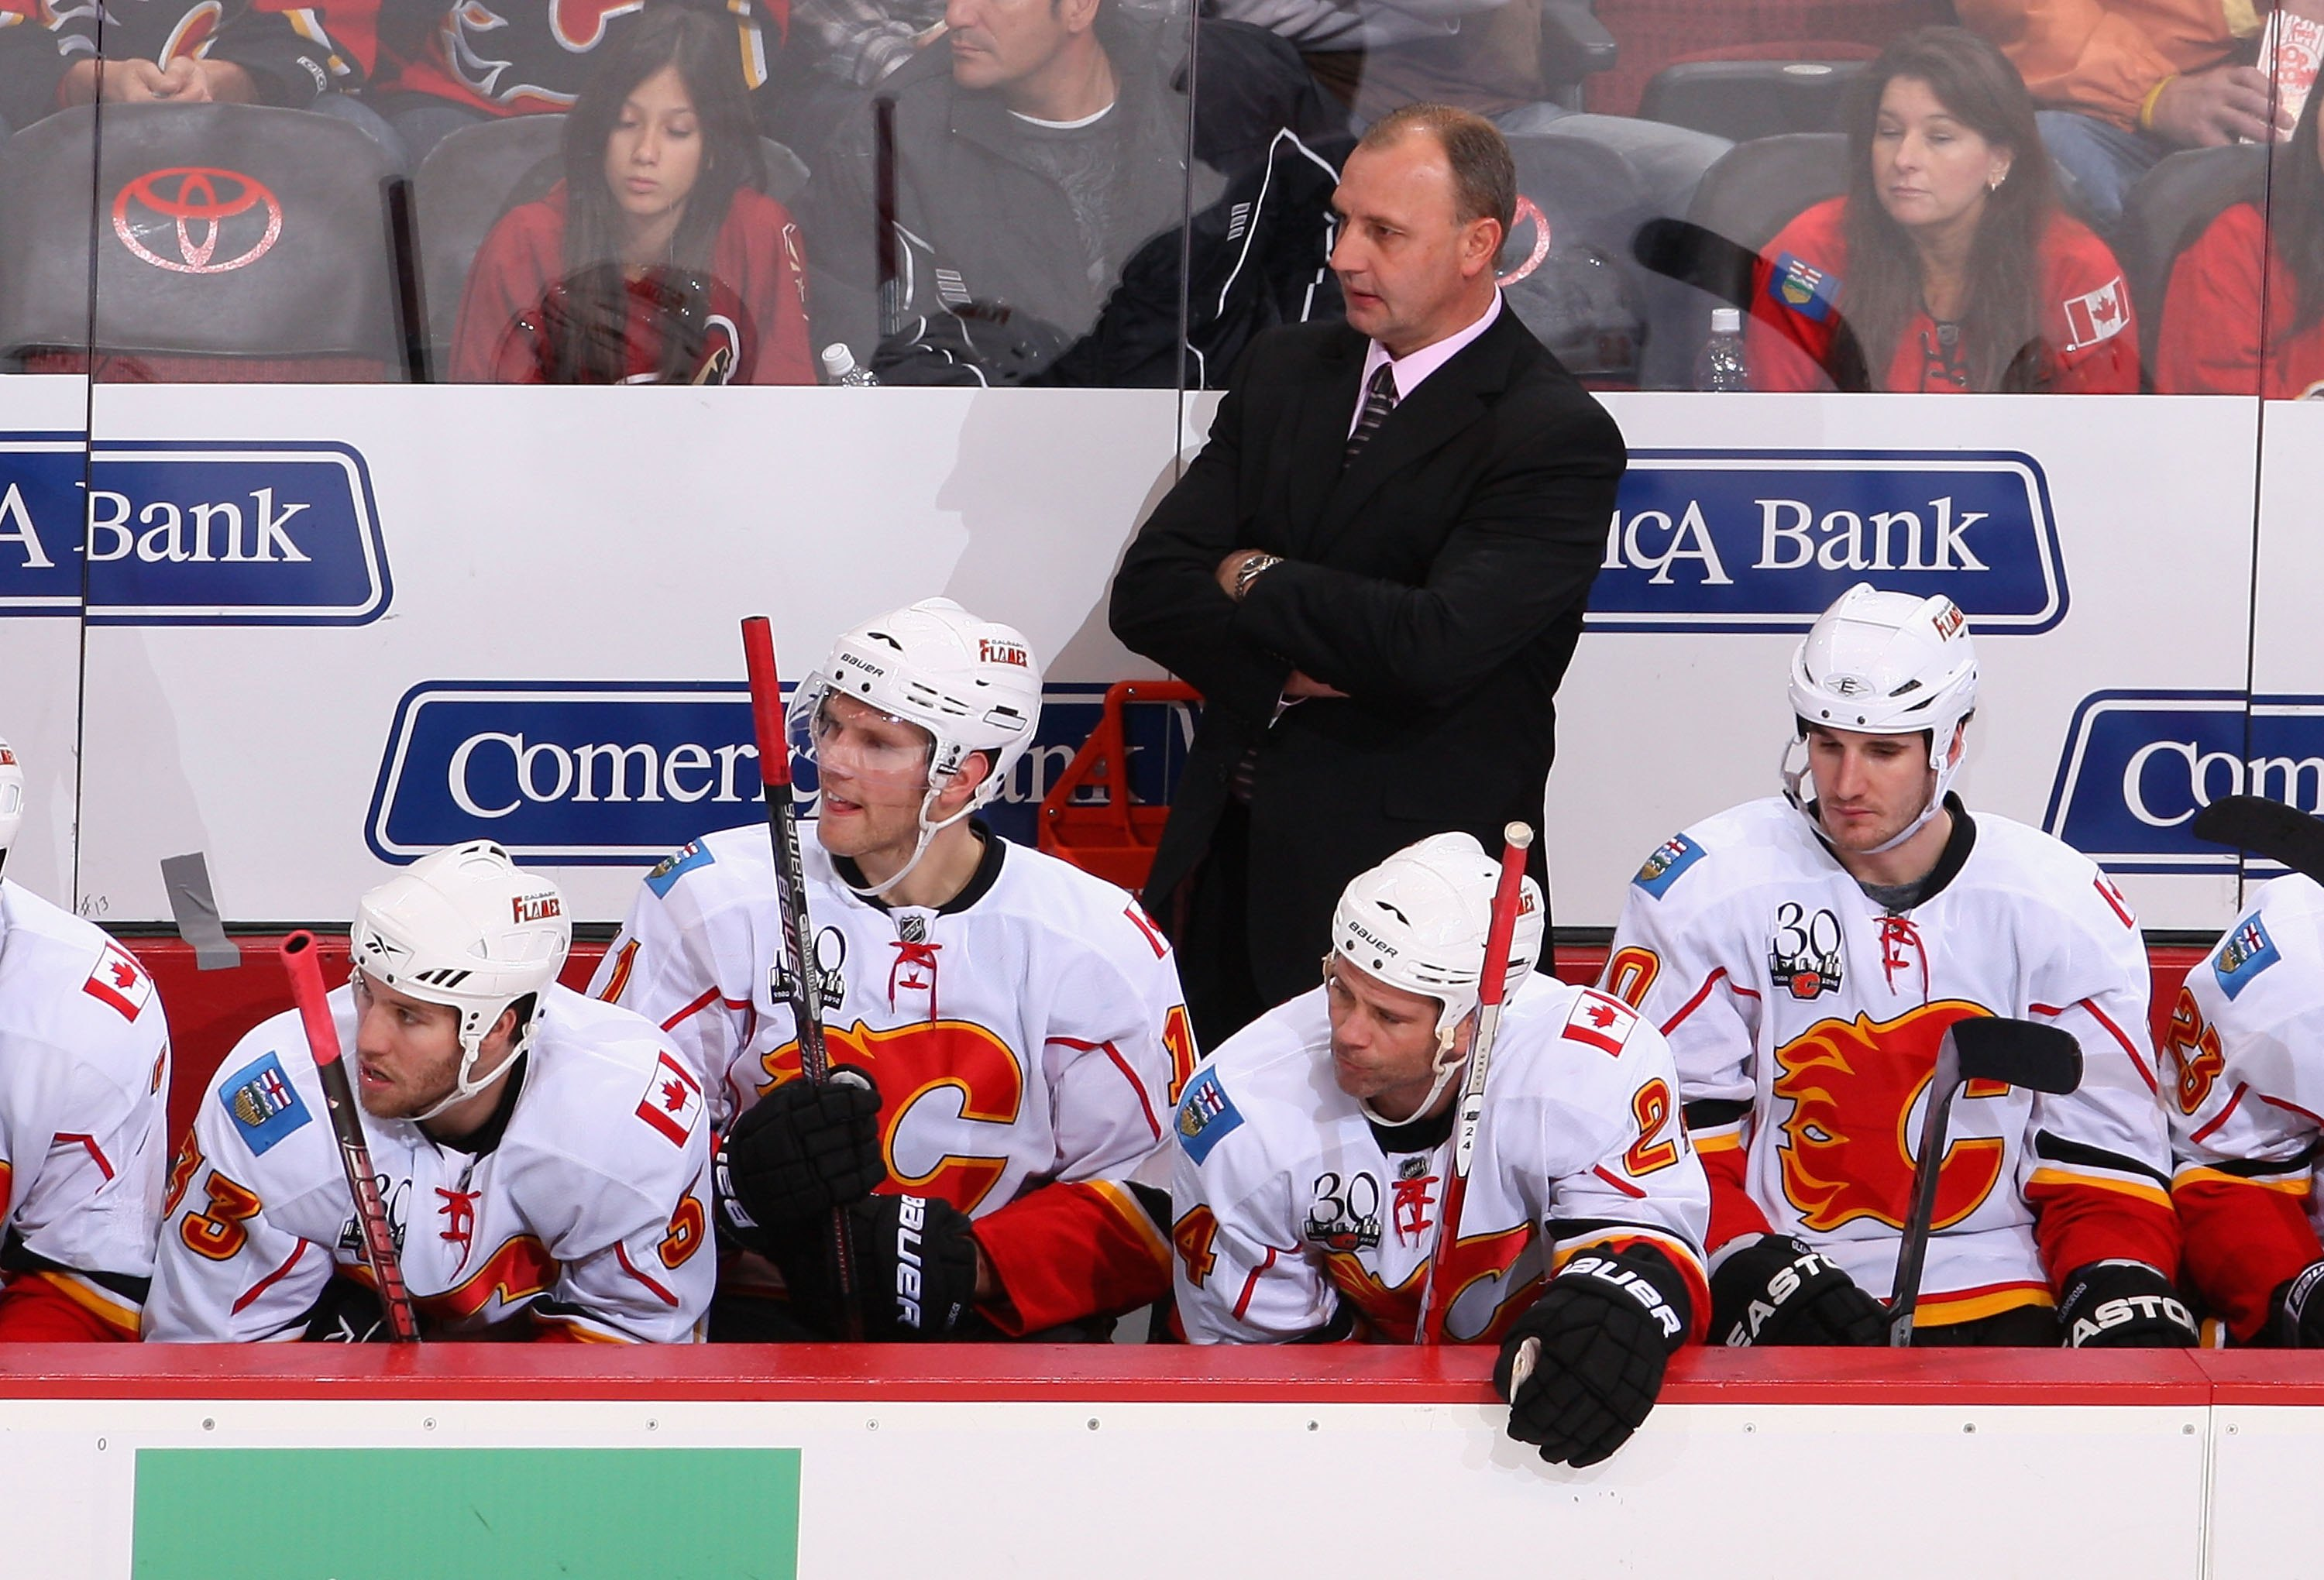 e60040a9ebd Brent Sutter was hired by his brother to be Head Coach of the Calgary  Flames on